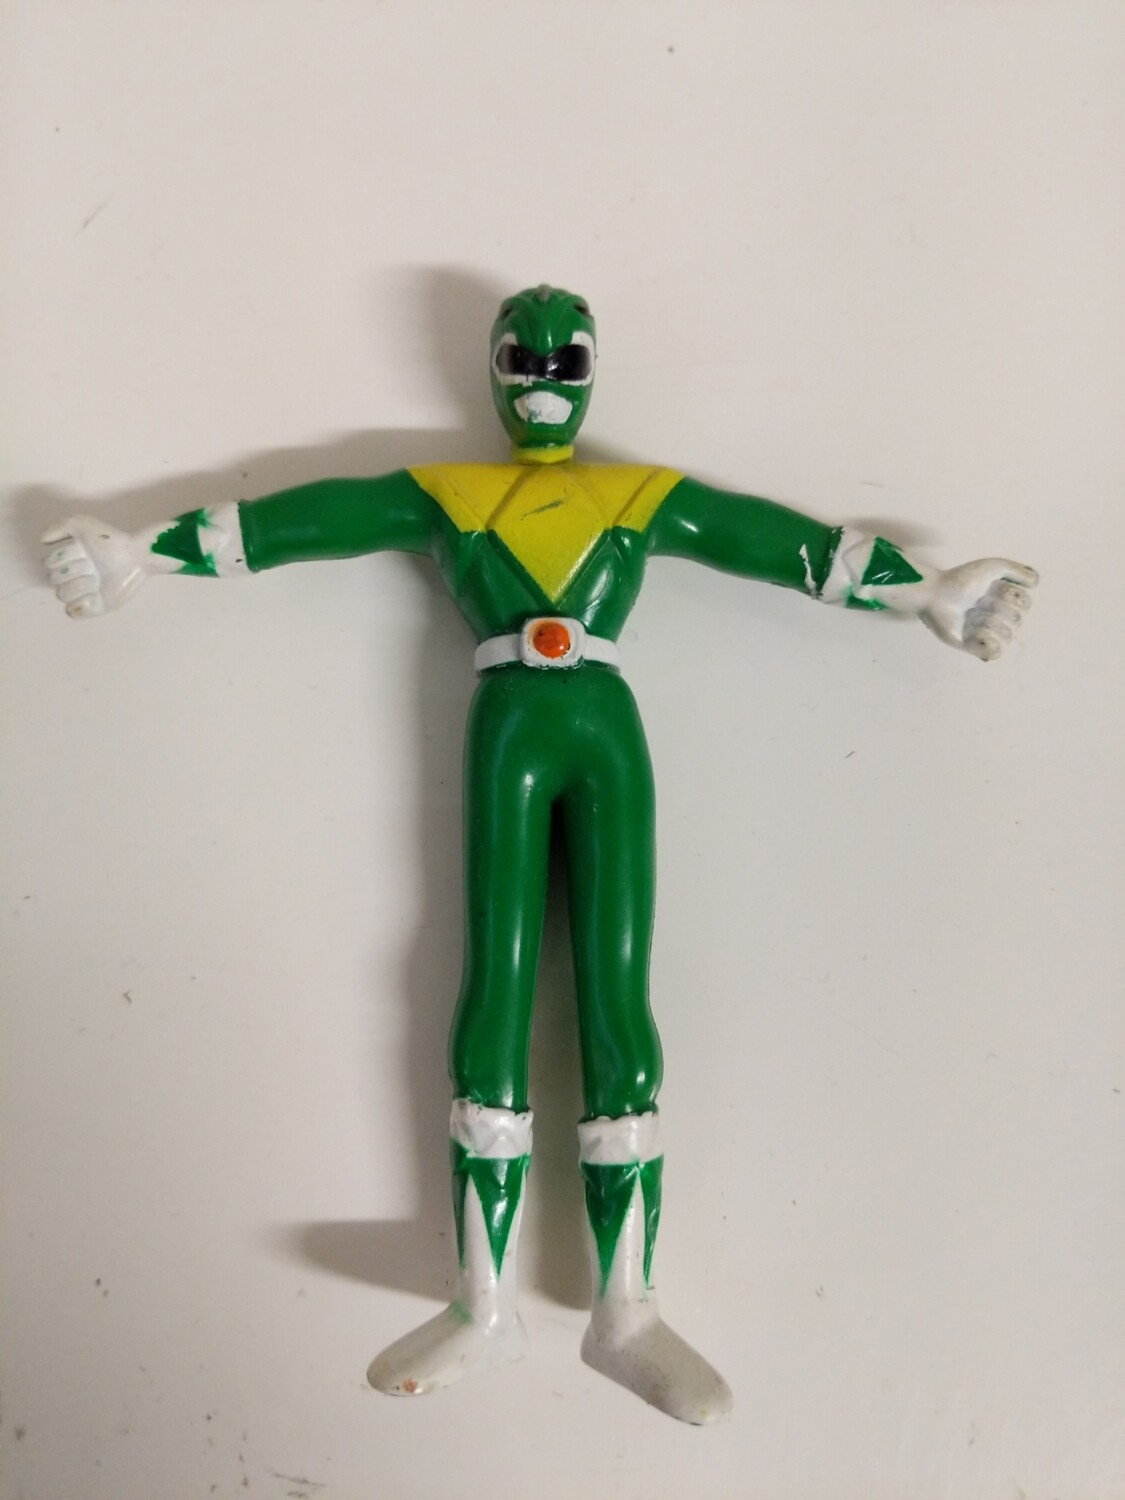 Mighty Morphin Power Rangers rubber bendable figure : Green Ranger